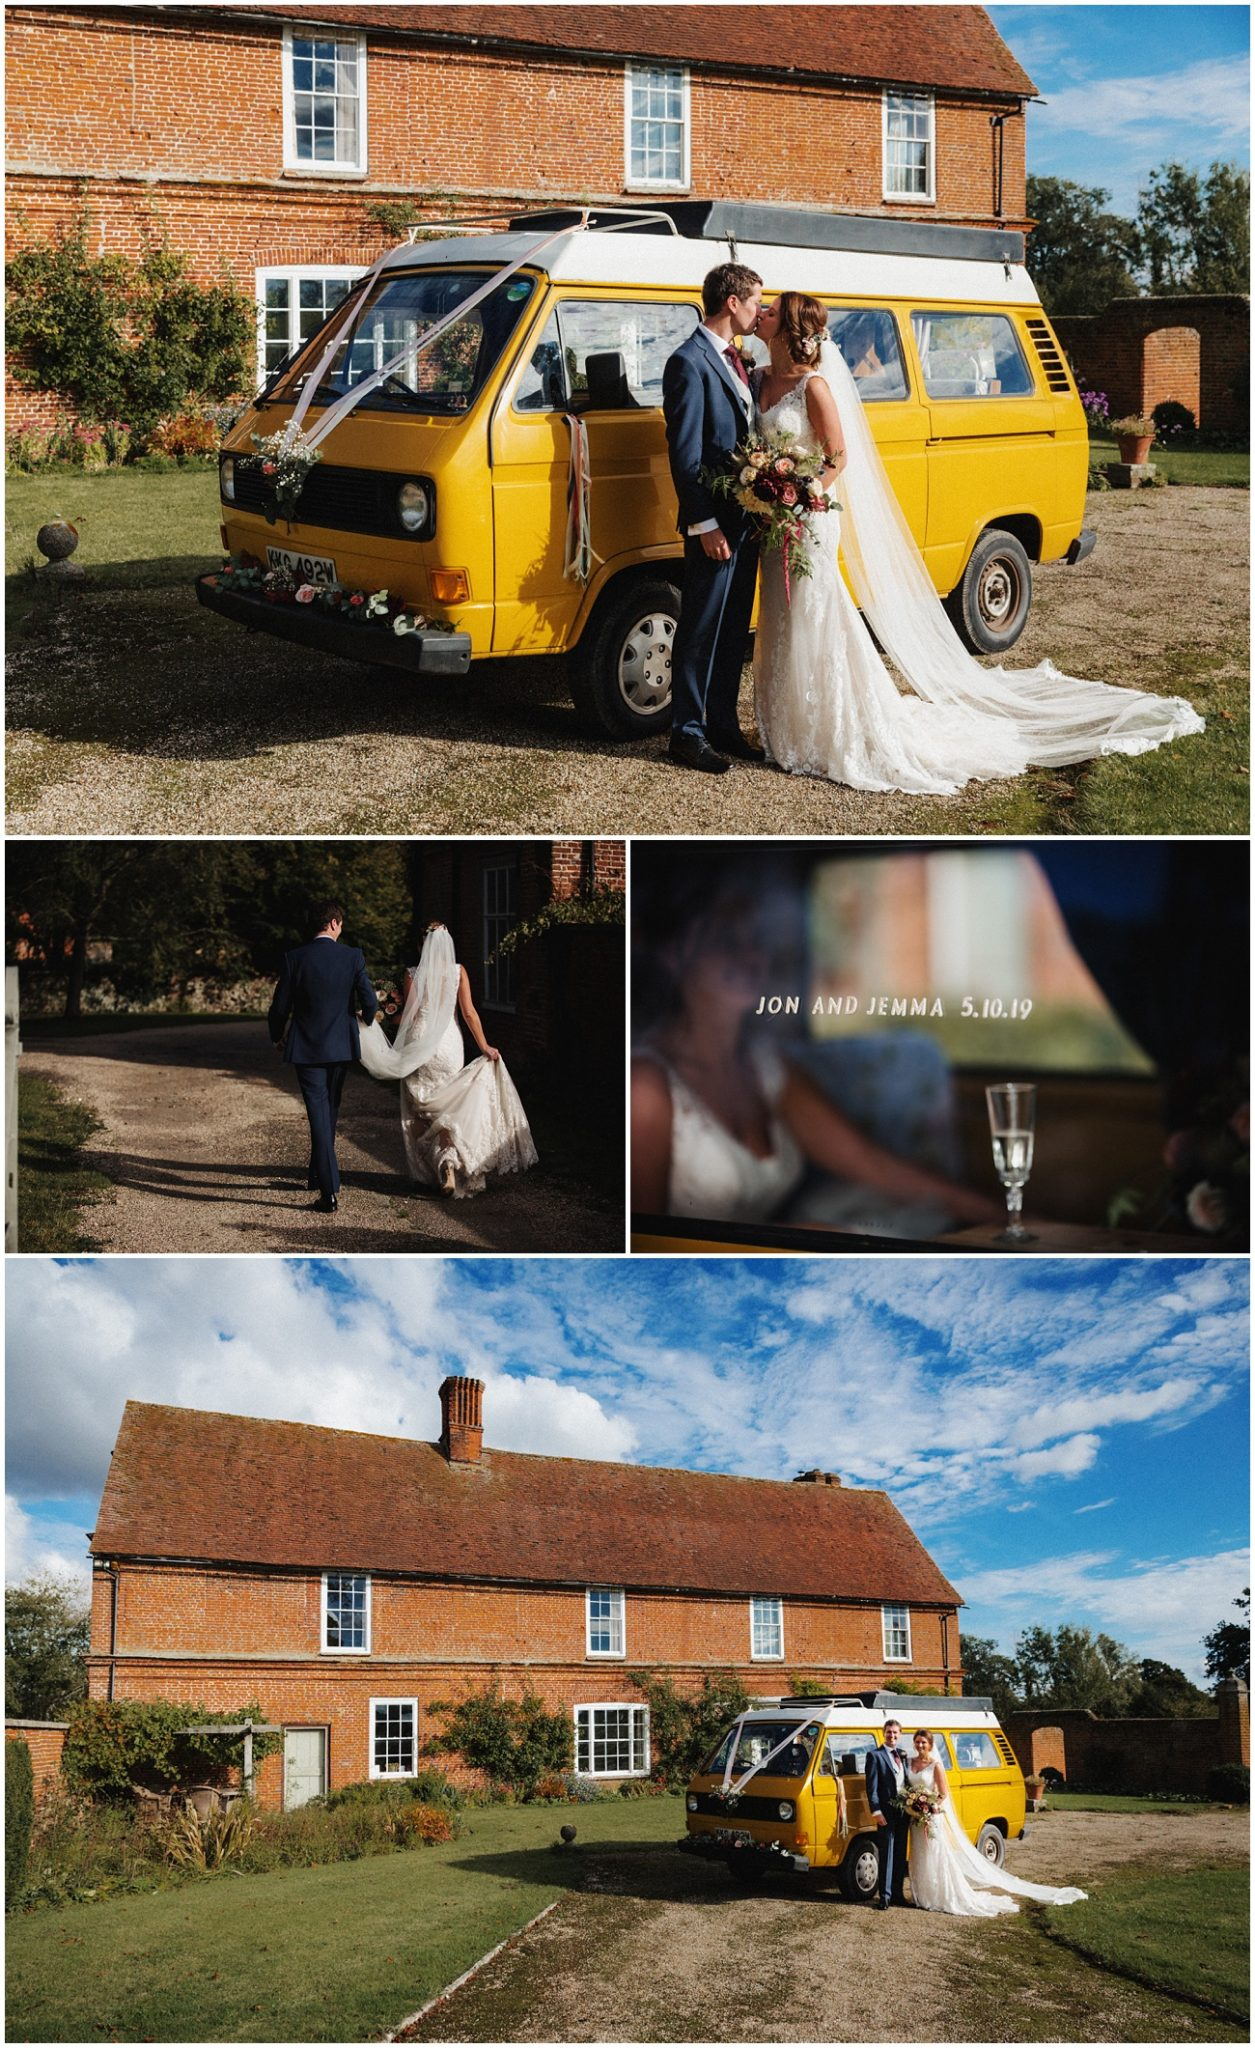 The bride and groom with their wedding campervan back at the great lodge